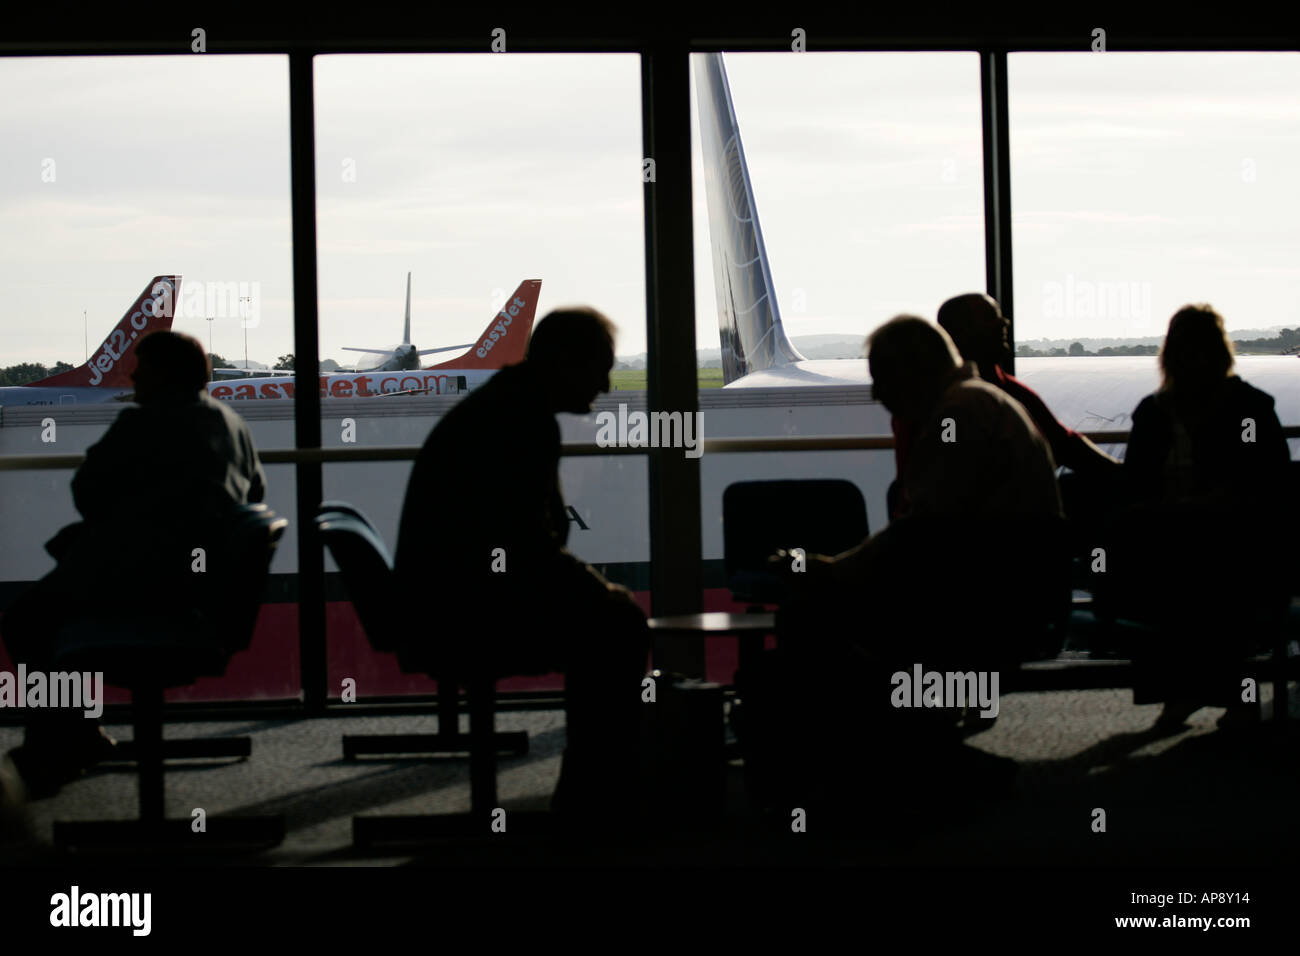 Passengers waiting in lounge in front of window at Belfast International airport northern ireland - Stock Image